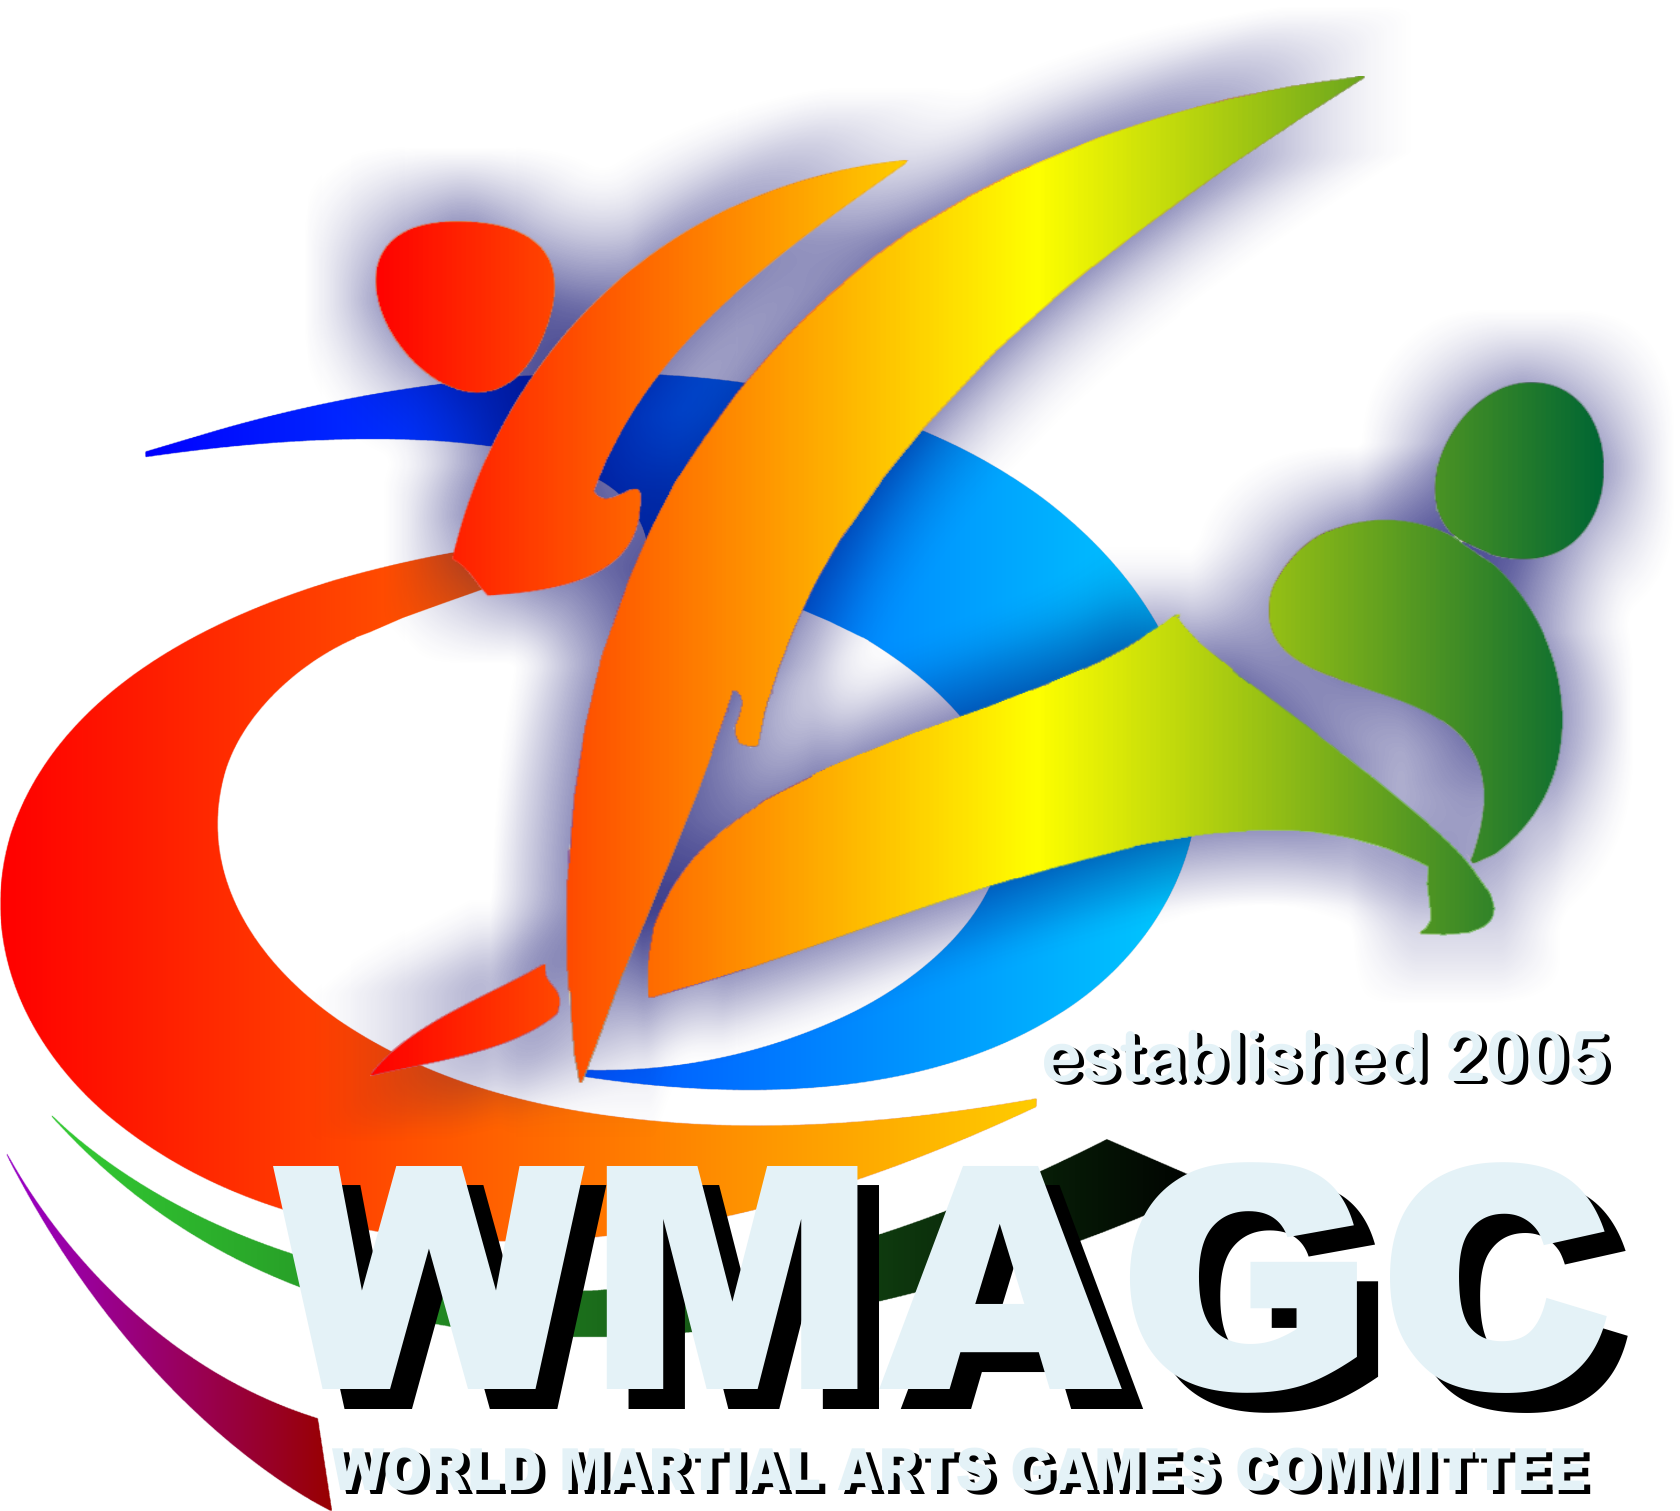 WMAGC_logo_with_kicker_and_text Clear Background